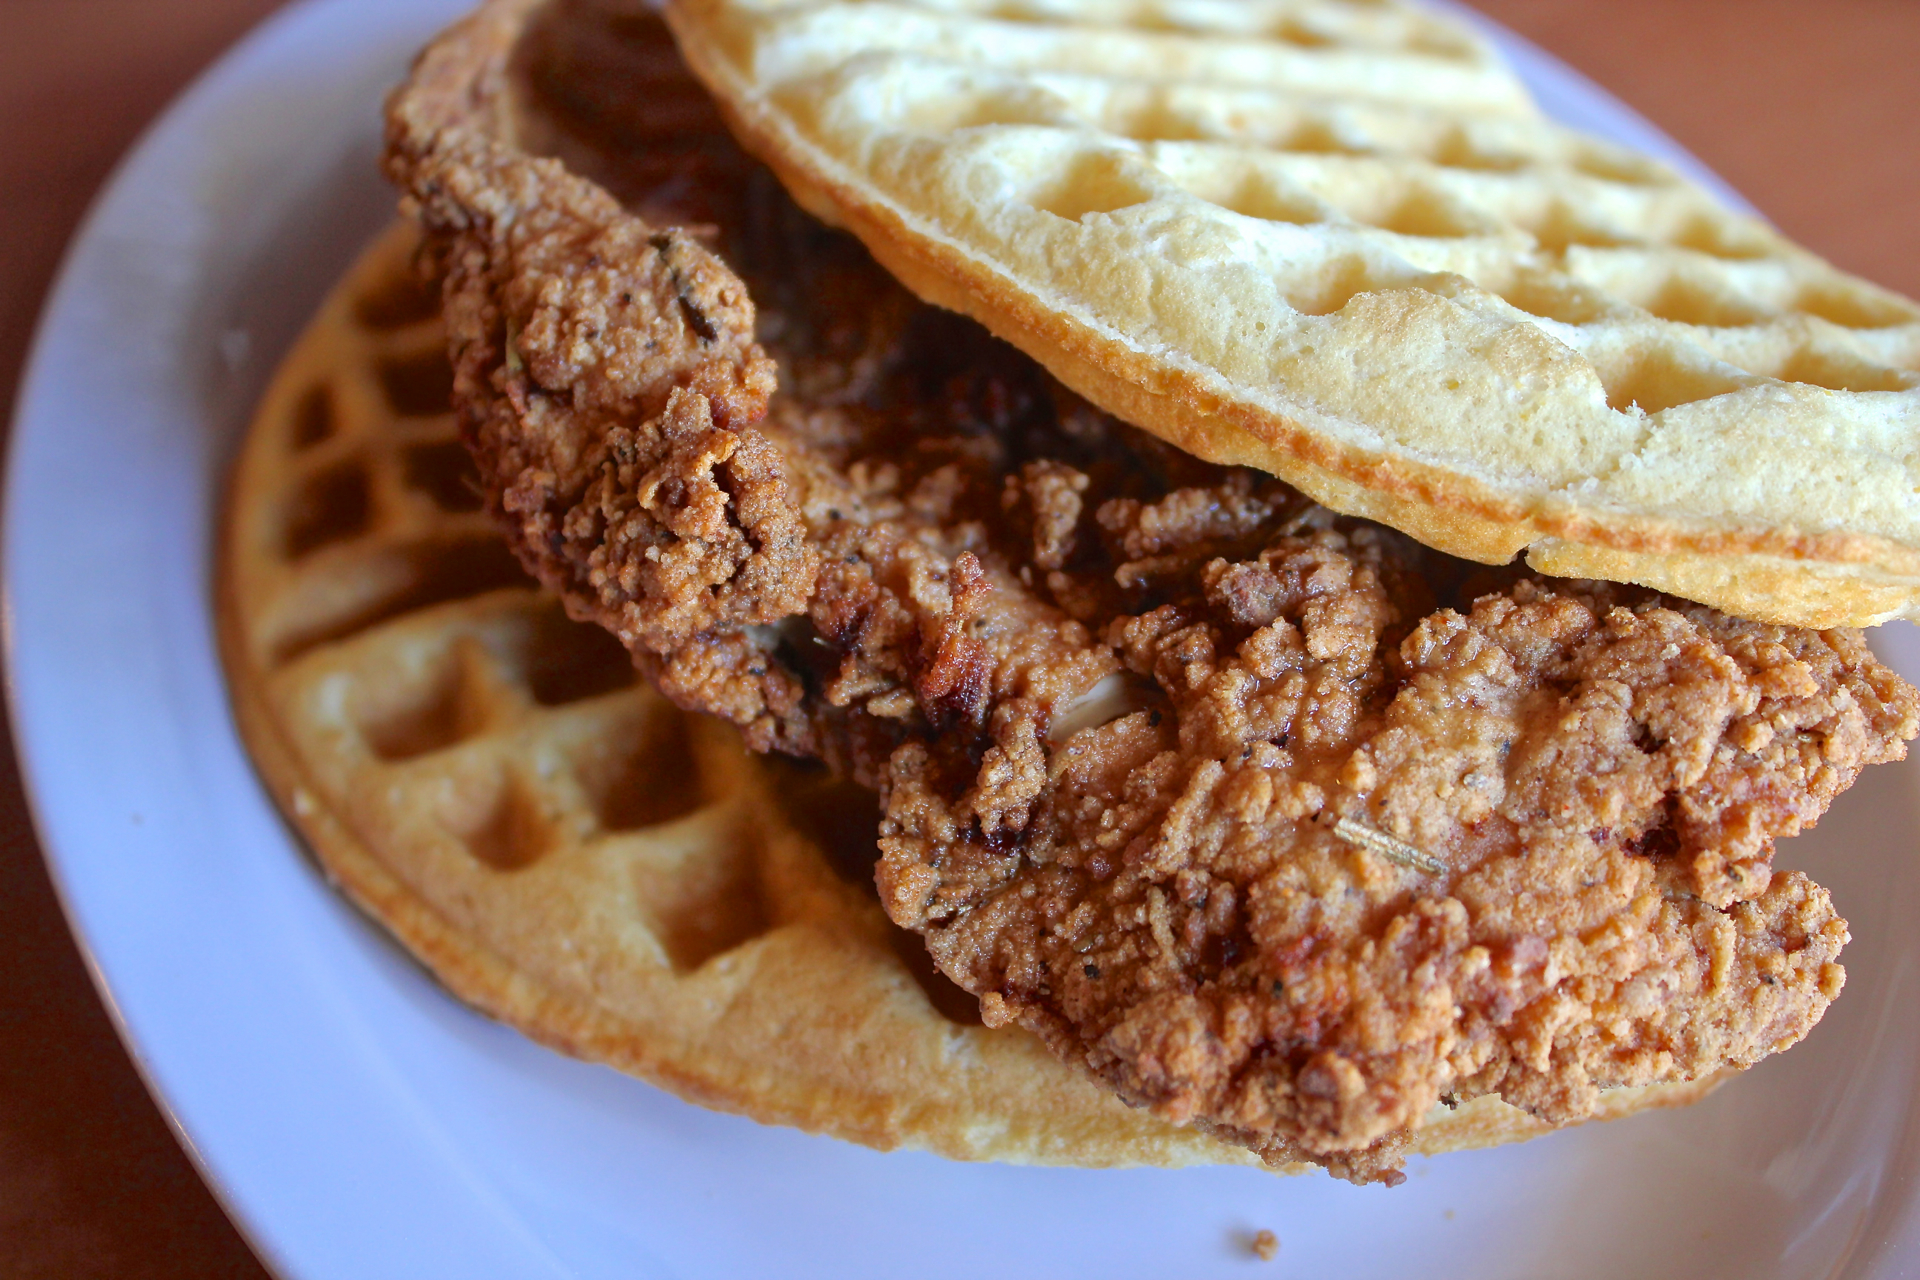 The Chicken 'N Waffle at Butter & Zeus.